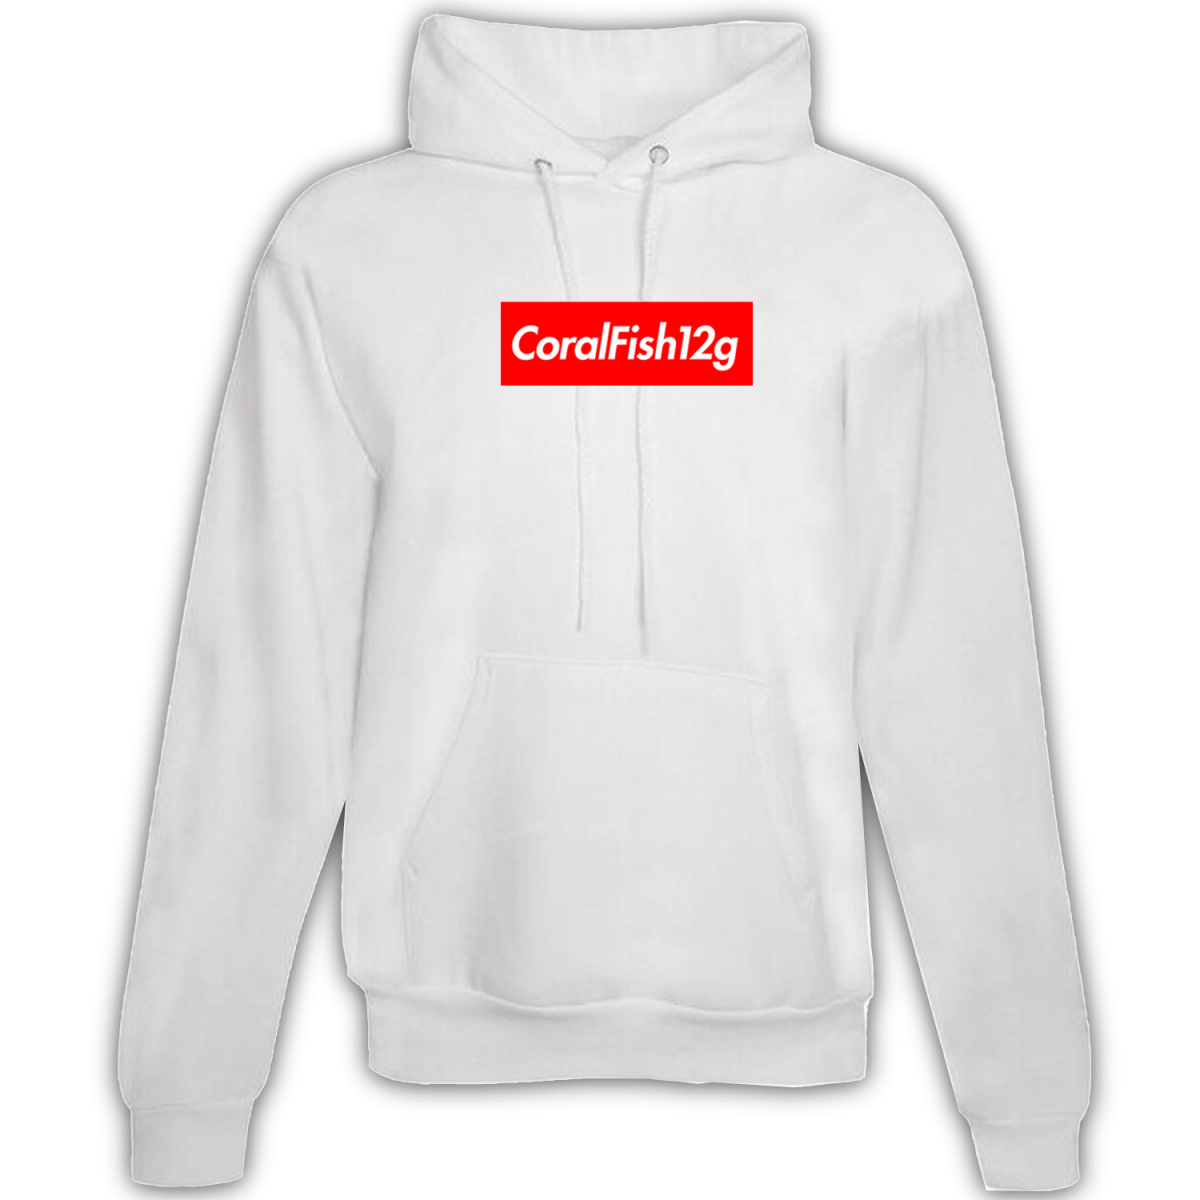 CoralFish12g Exclusive Red Box Hoodie